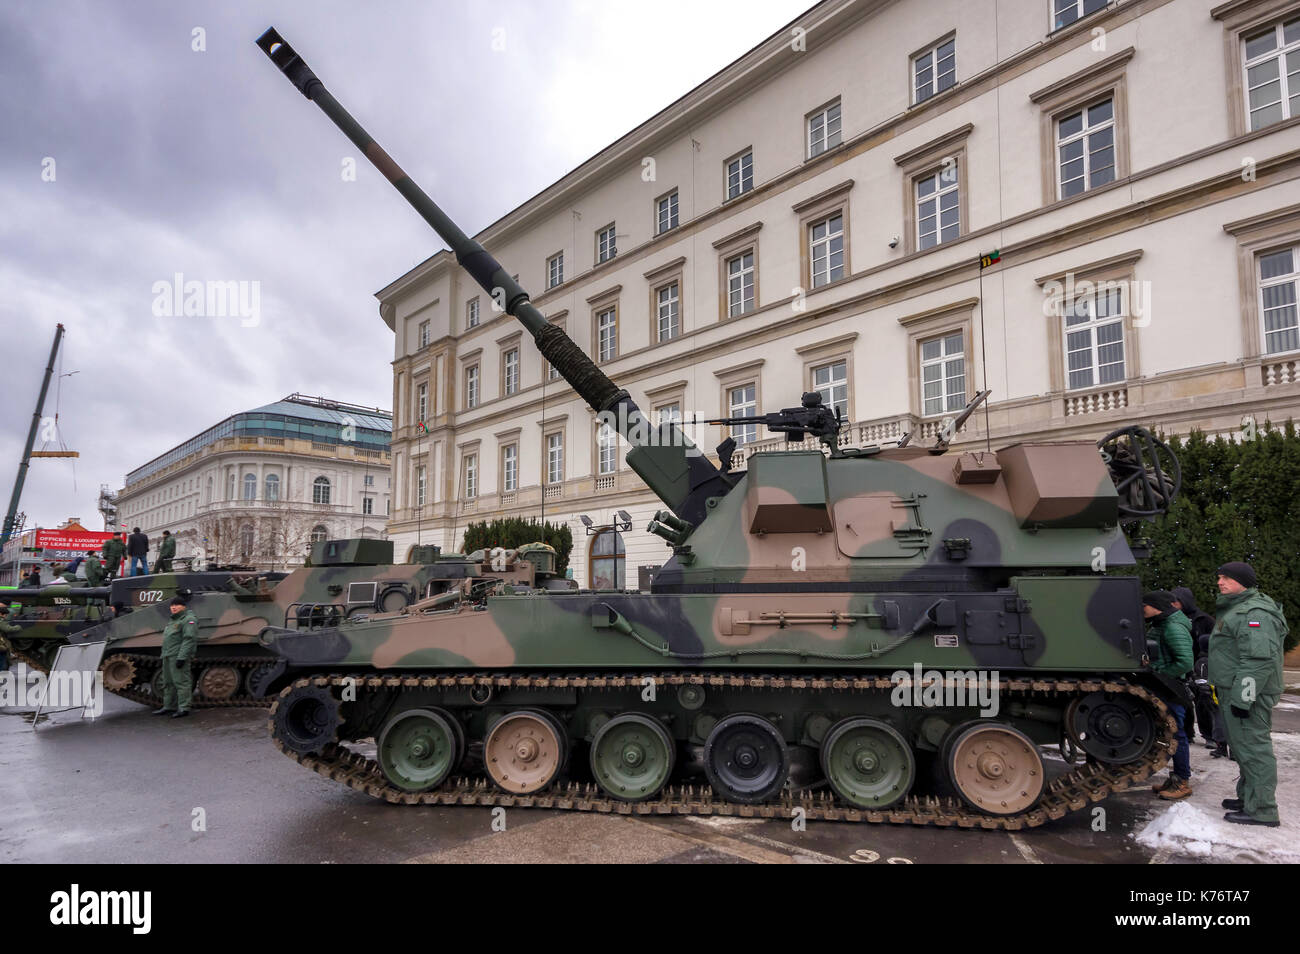 Modern Polish self-propelled AHS Krab 155 mm howitzer used by the Armed Forces of the Republic of Poland - Warsaw, Poland. - Stock Image